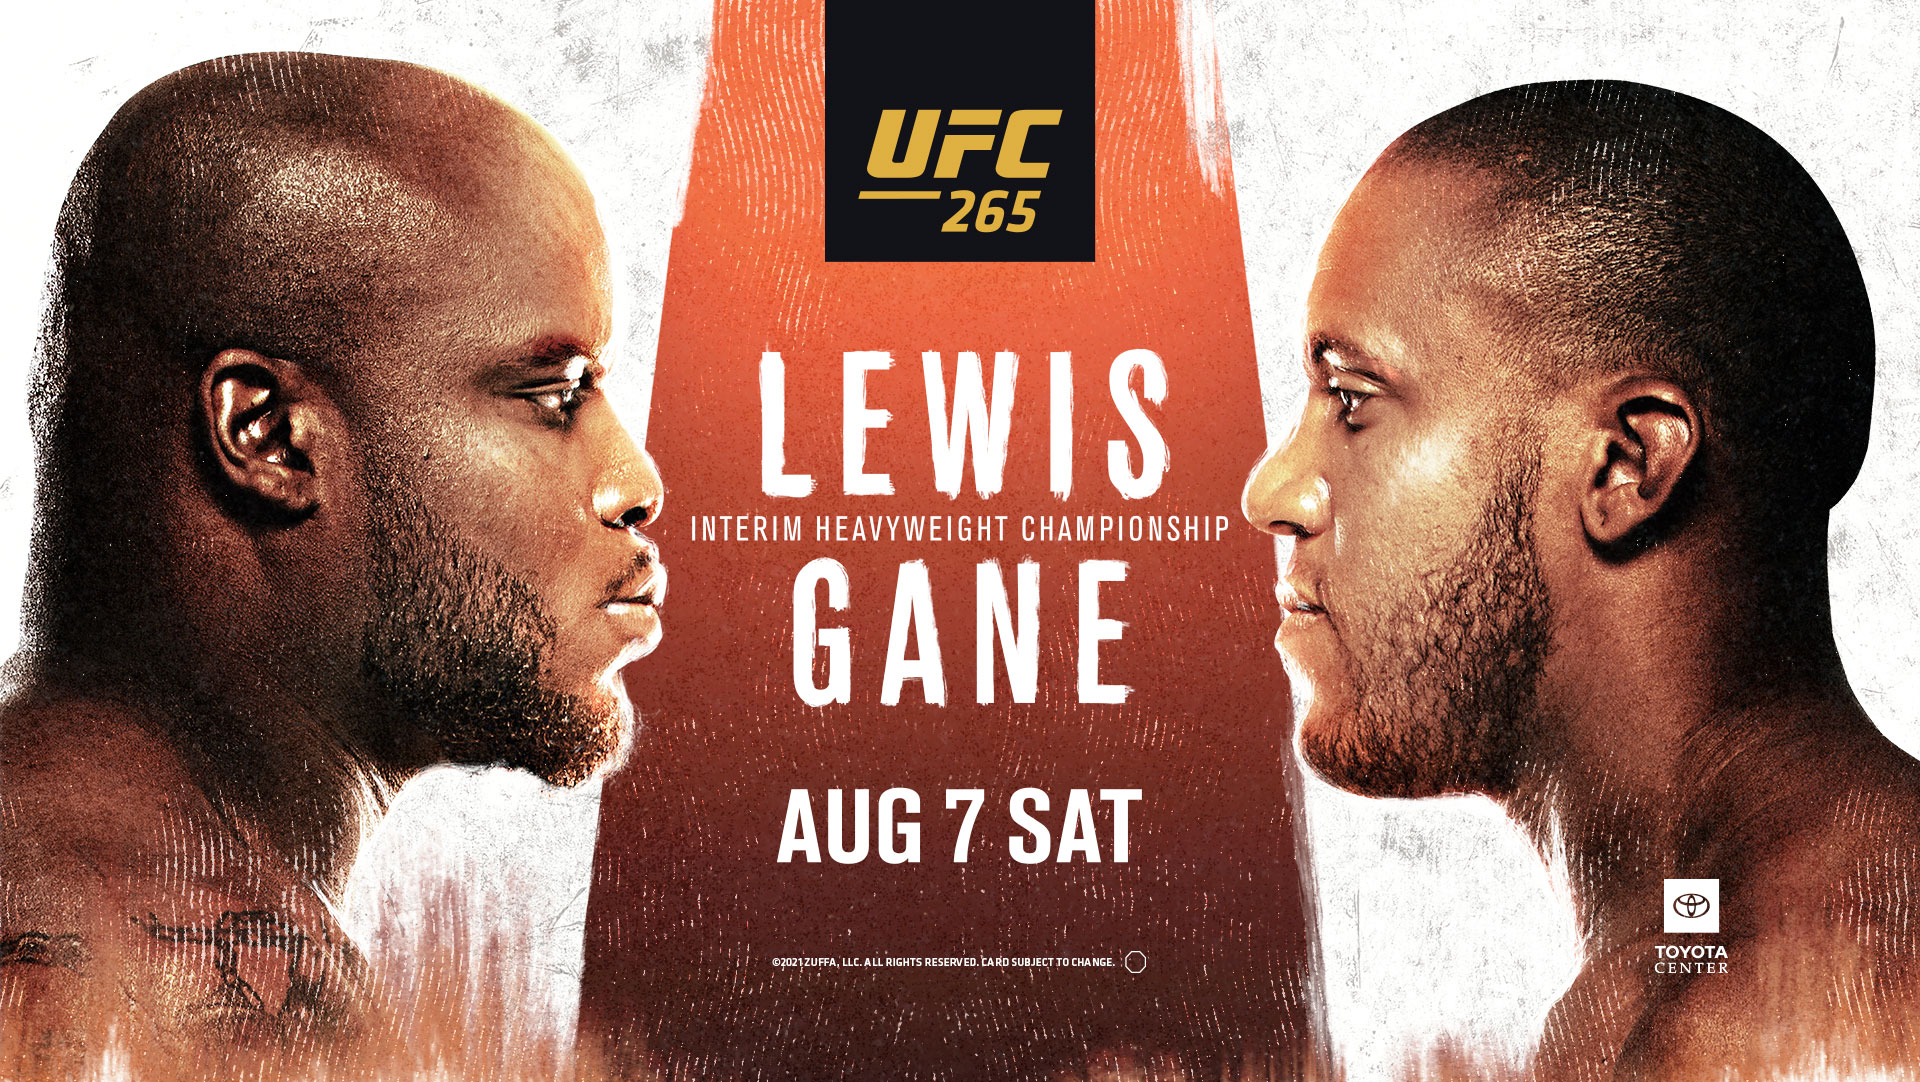 UFC 265: Lewis vs Gane - Reddit MMA Streams Live, How to Watch Online, Time, Fight Card